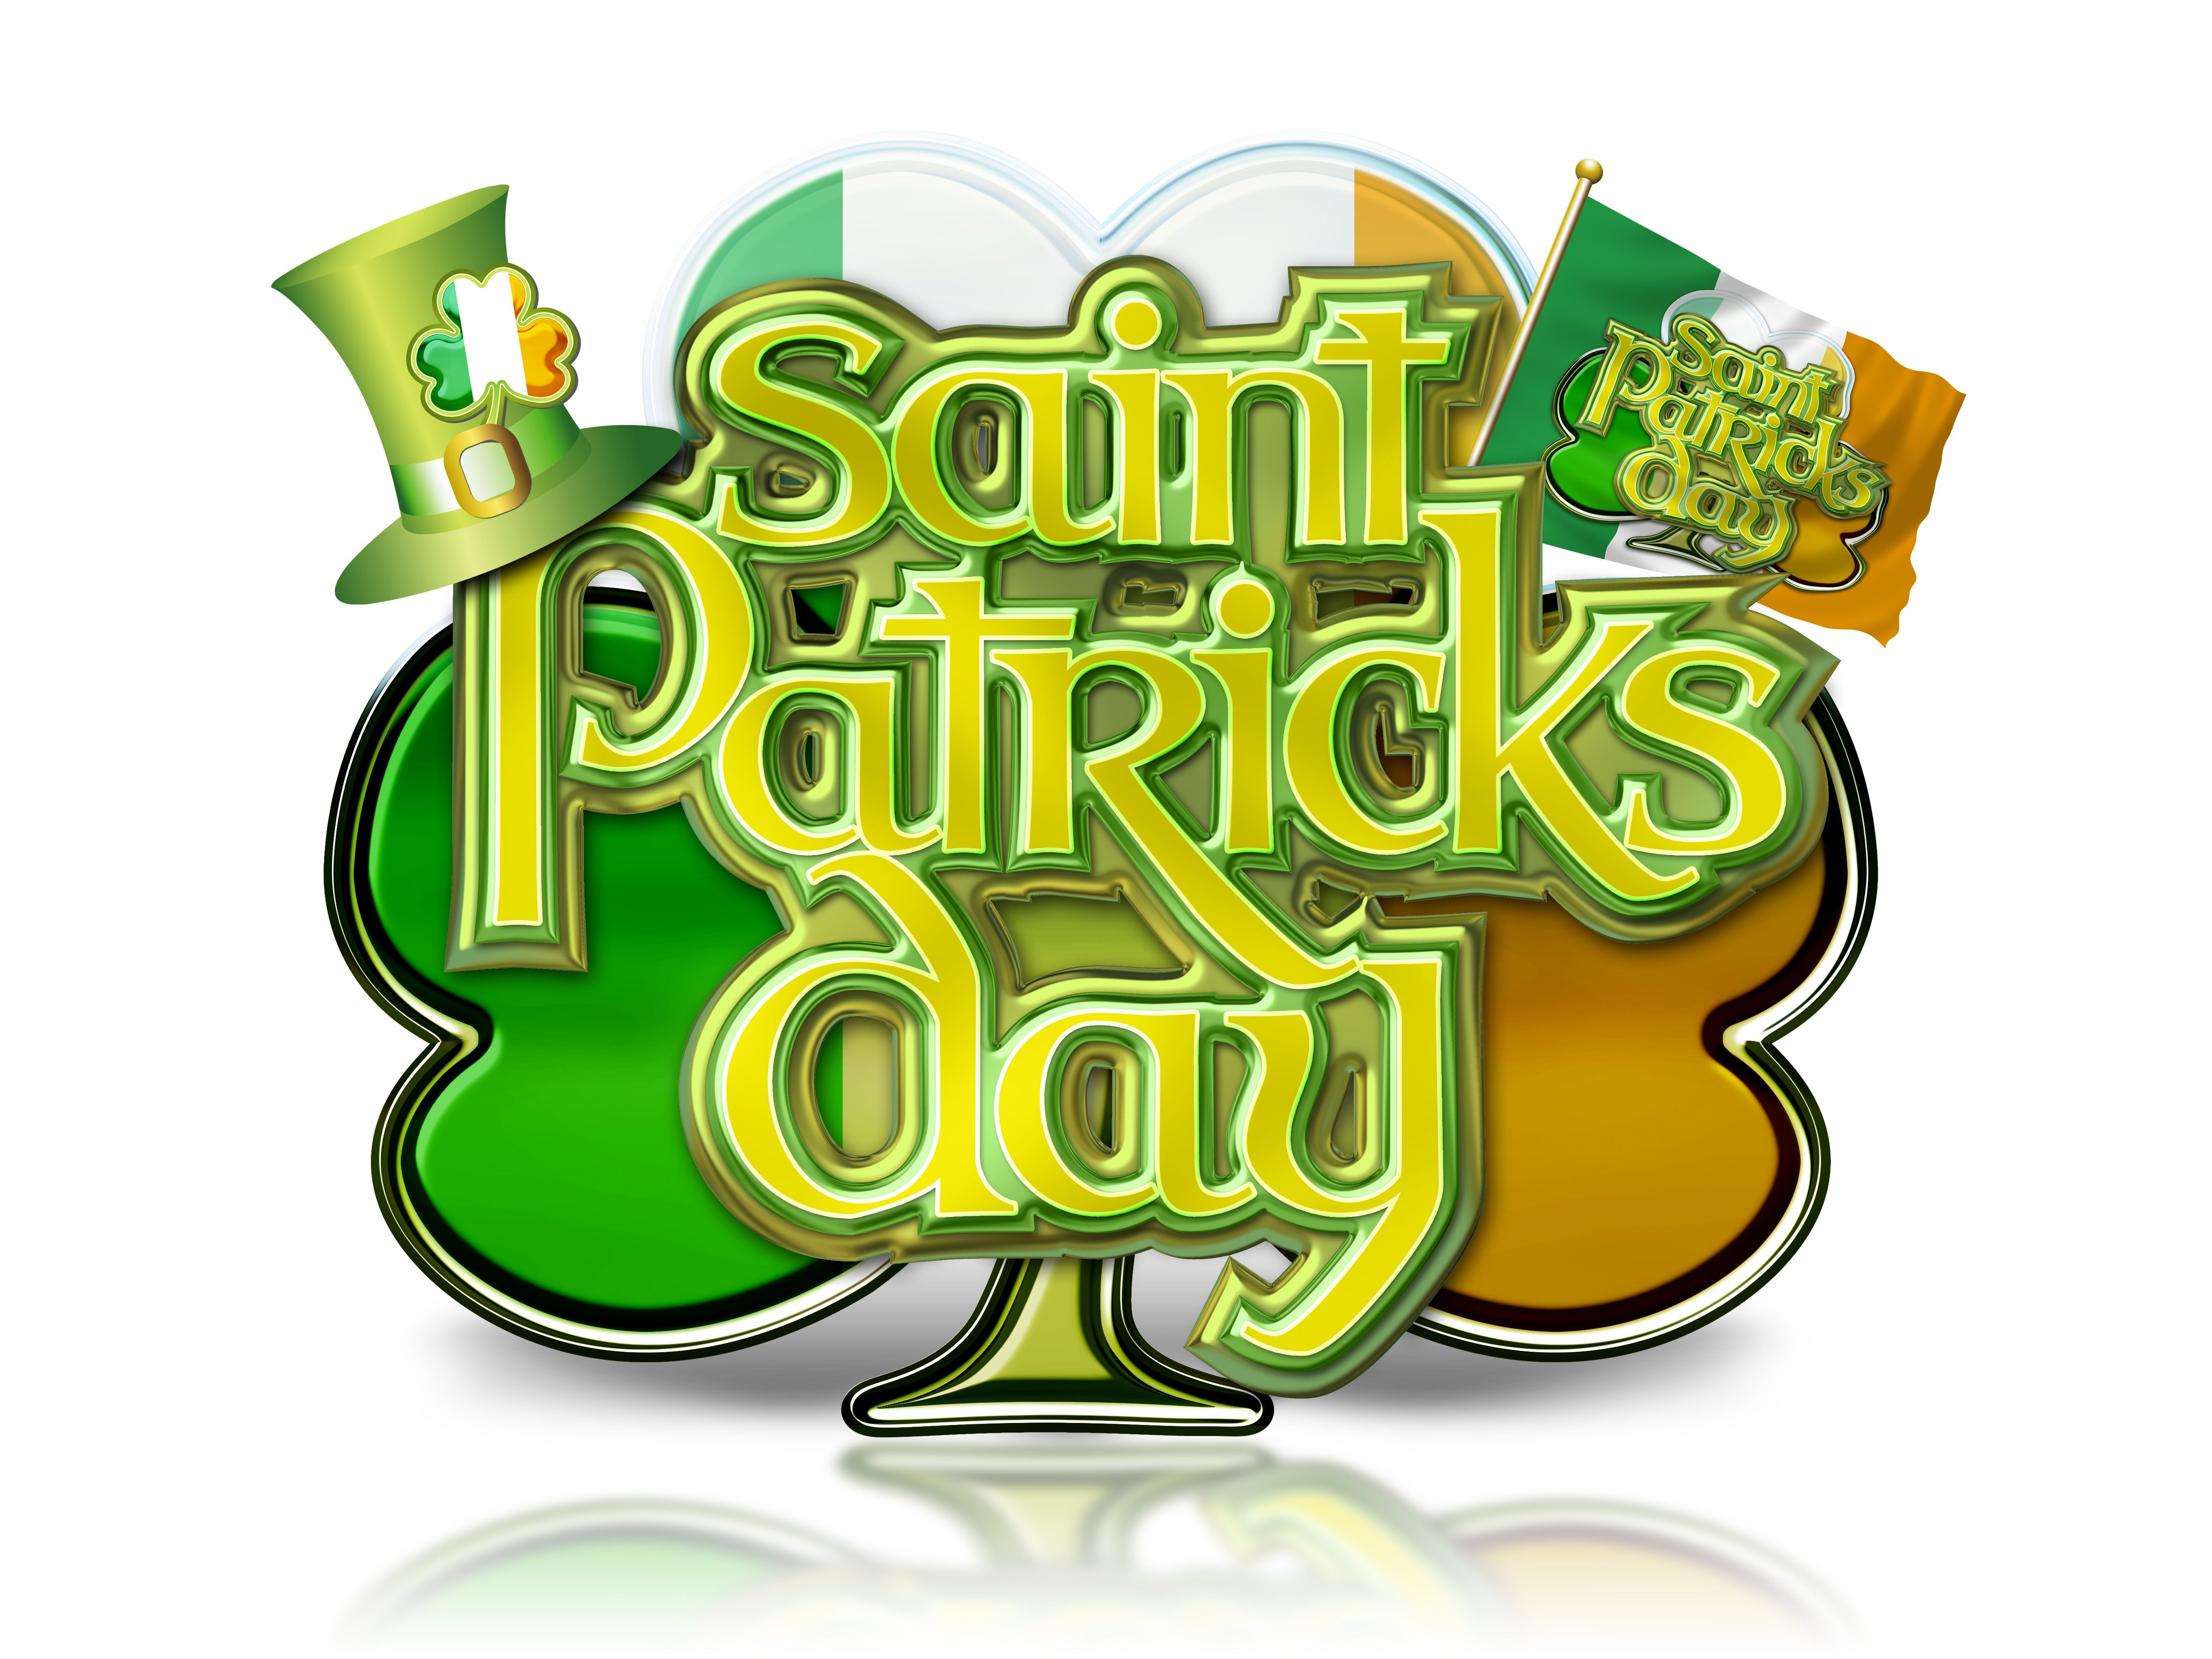 Funny St. Patricku0027s Day Quotes: 10 Hilarious Sayings To Celebrate .